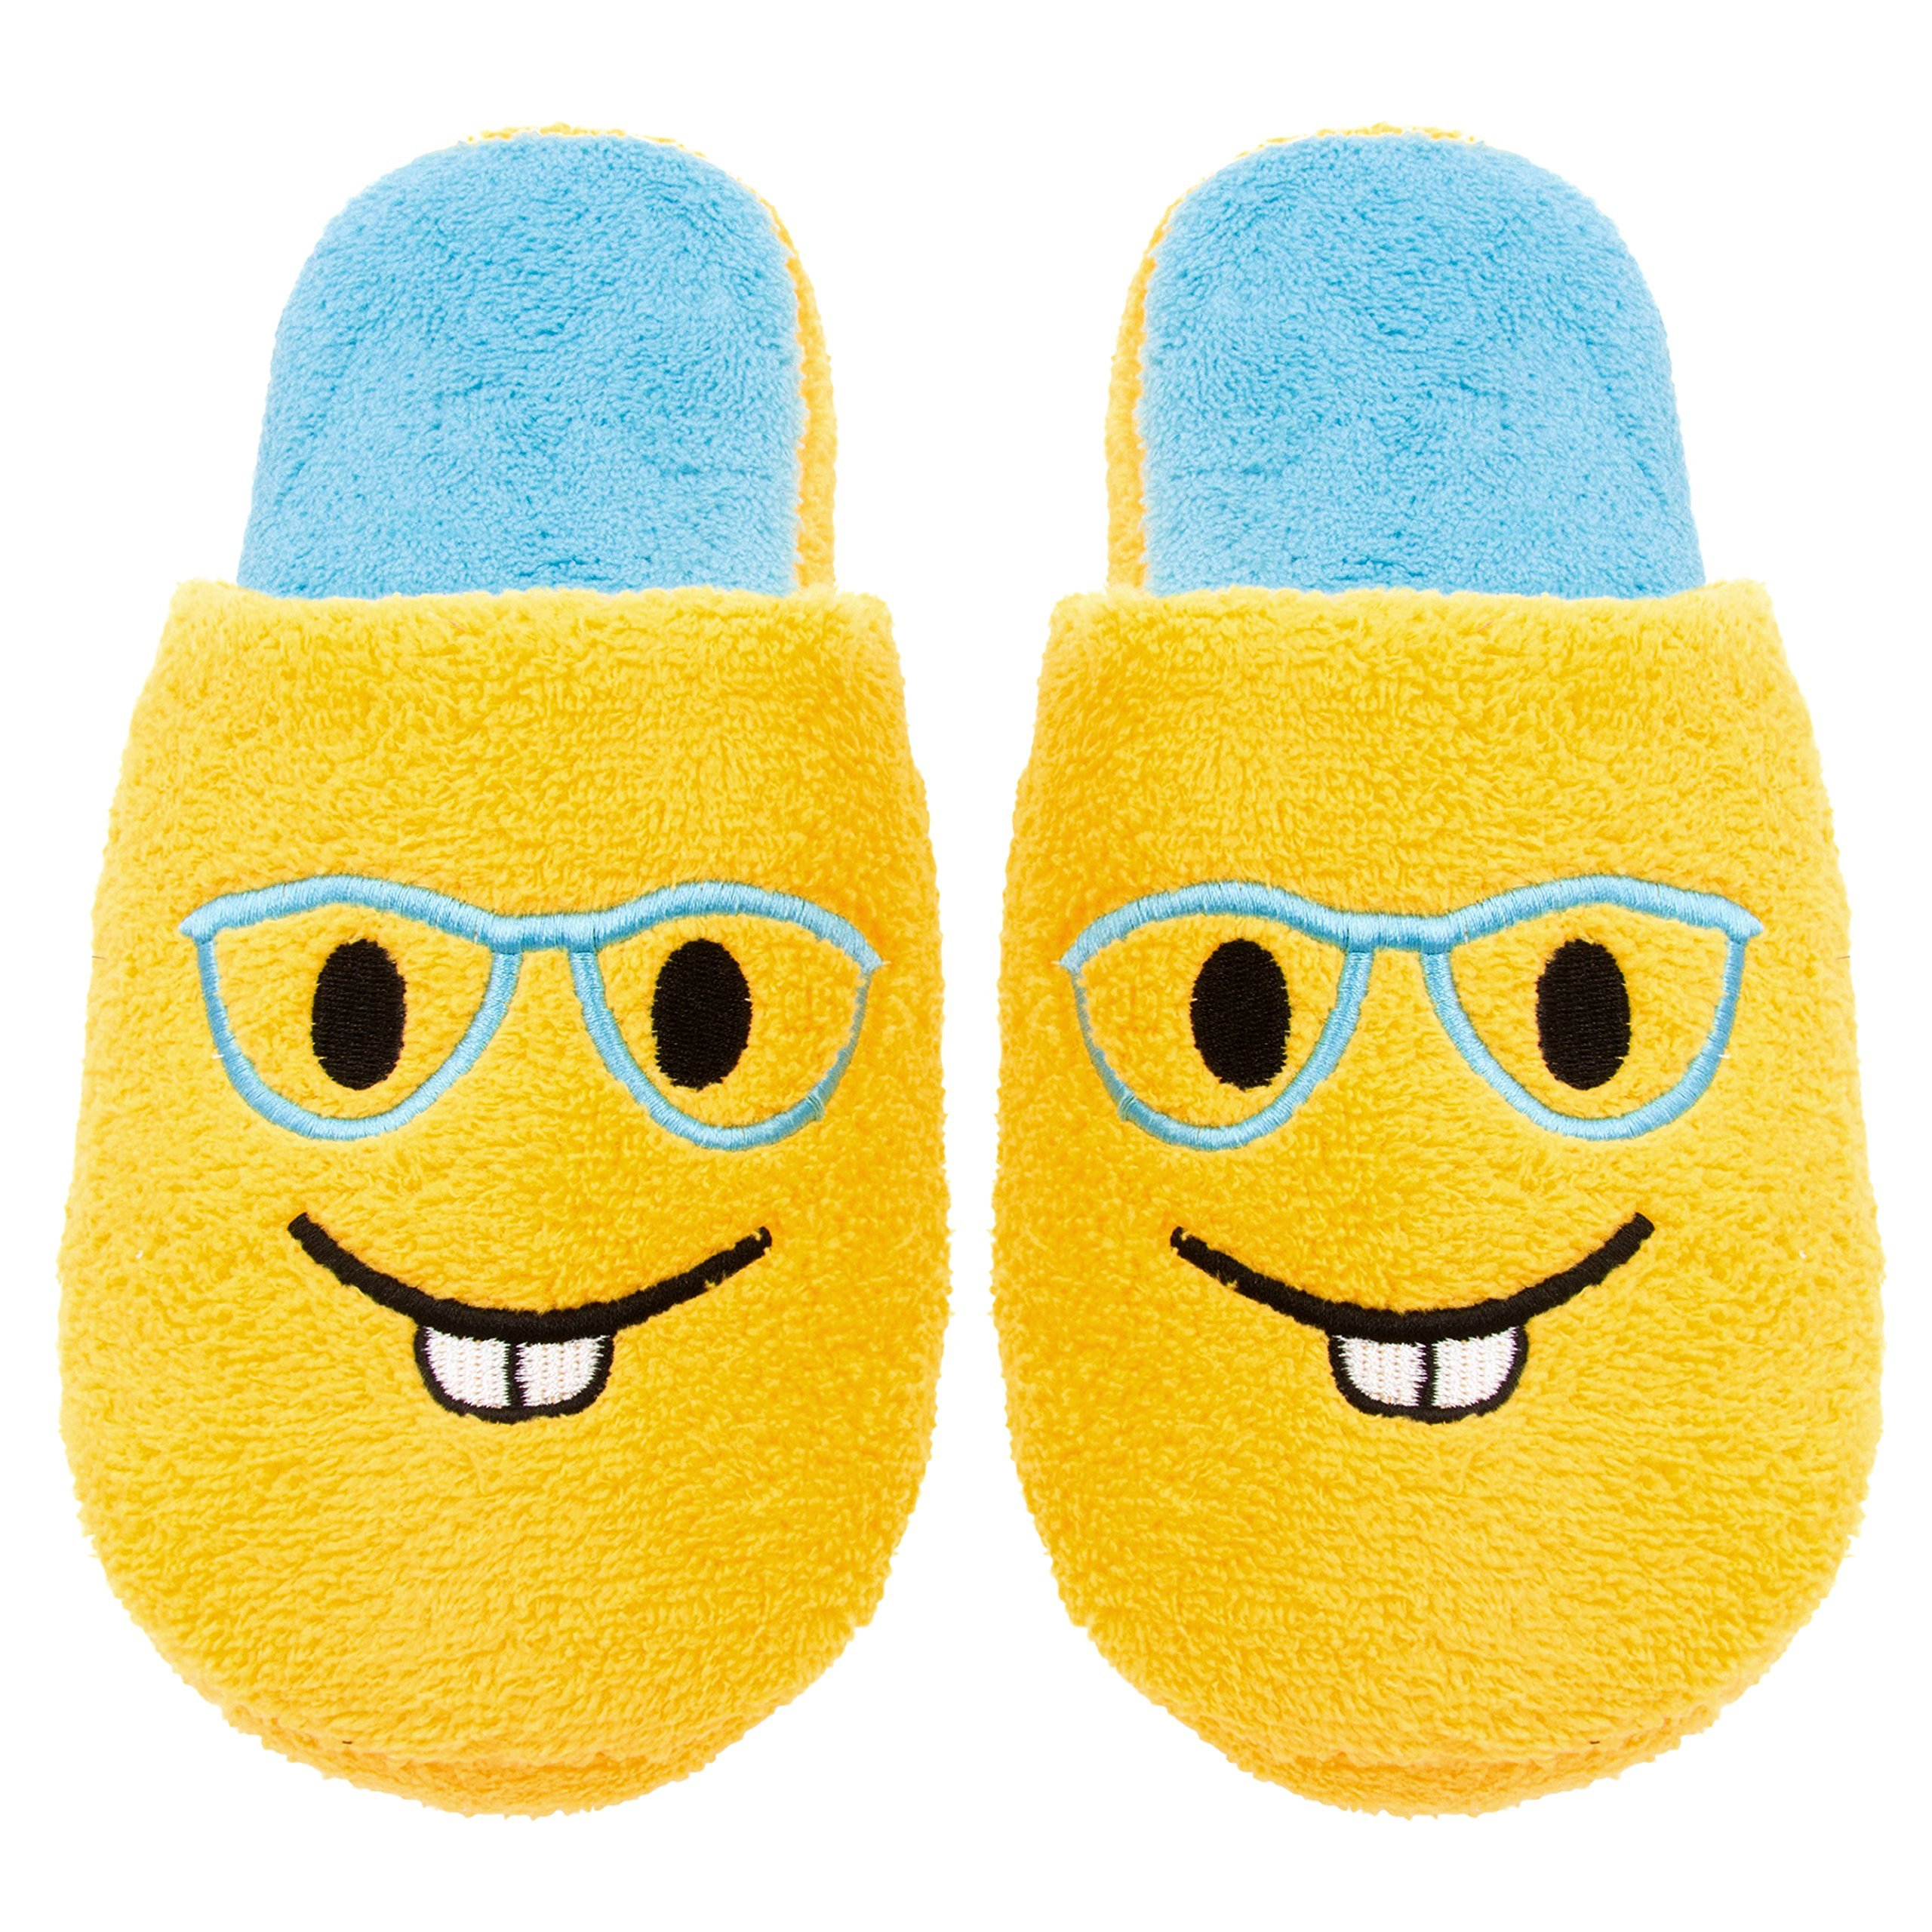 Chatties Ladies Terry Cloth Slip On Embroidered Novelty, Bedroom Slippers, 9/10, Bucktooth Glasses